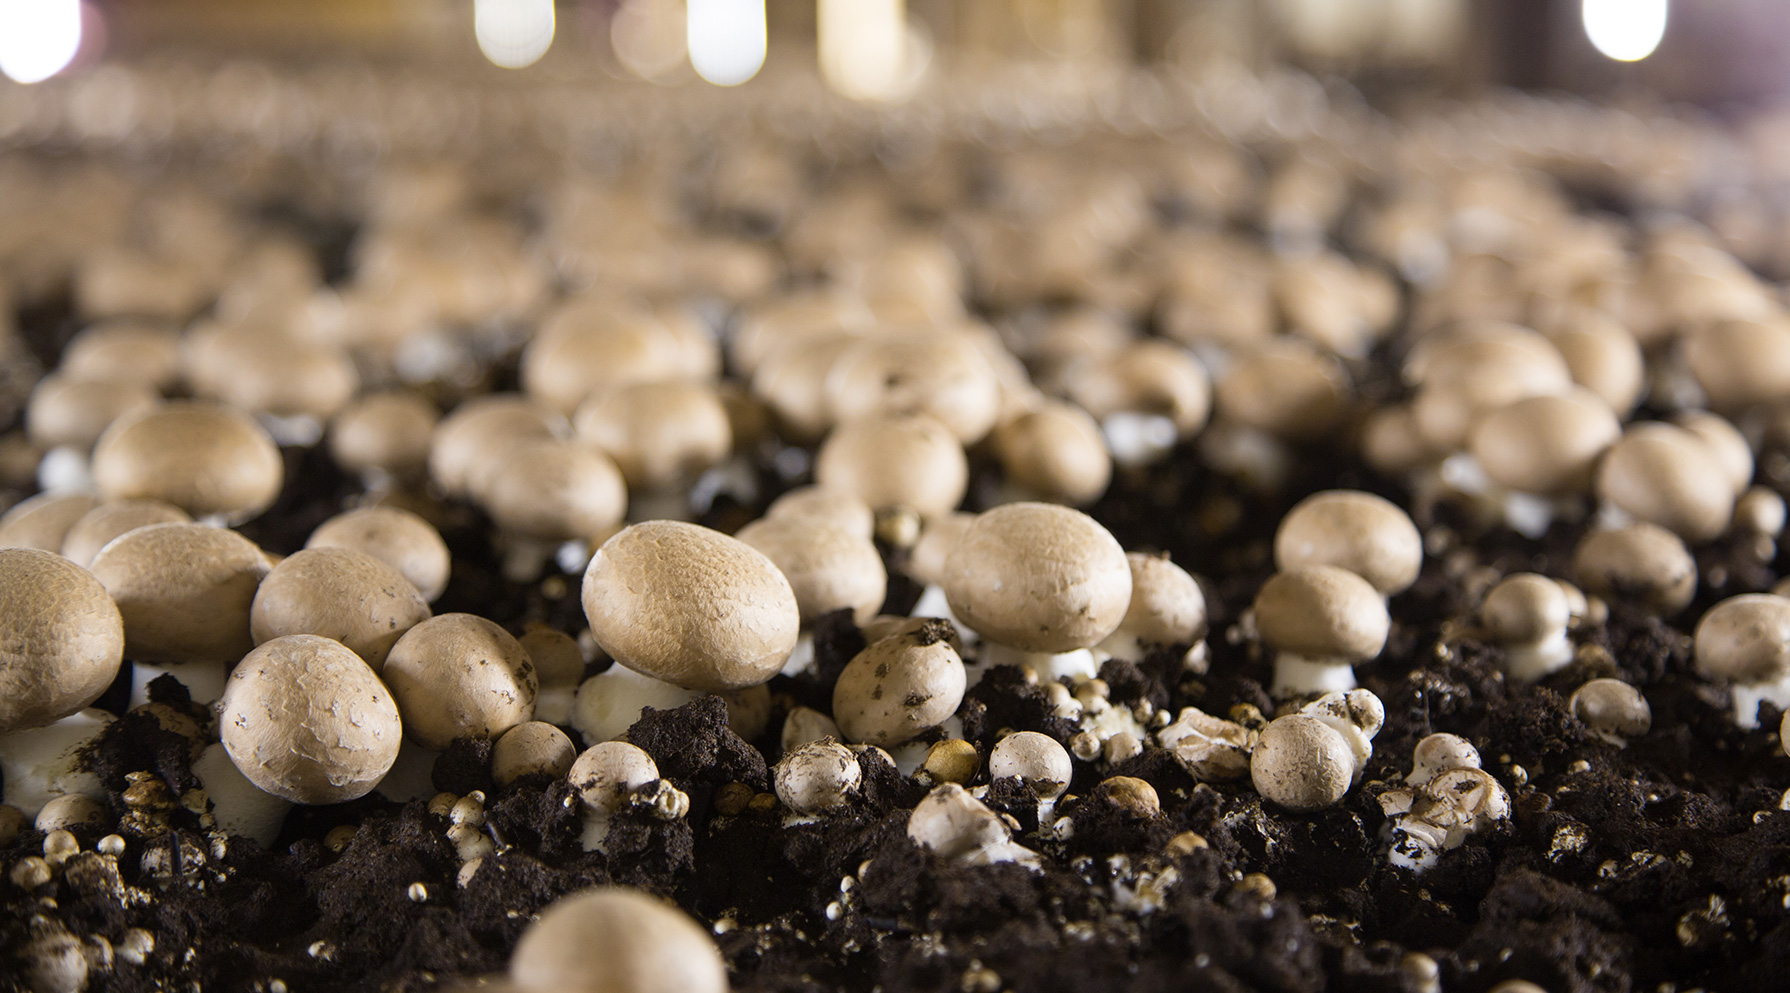 Mushrooms growing in dirt